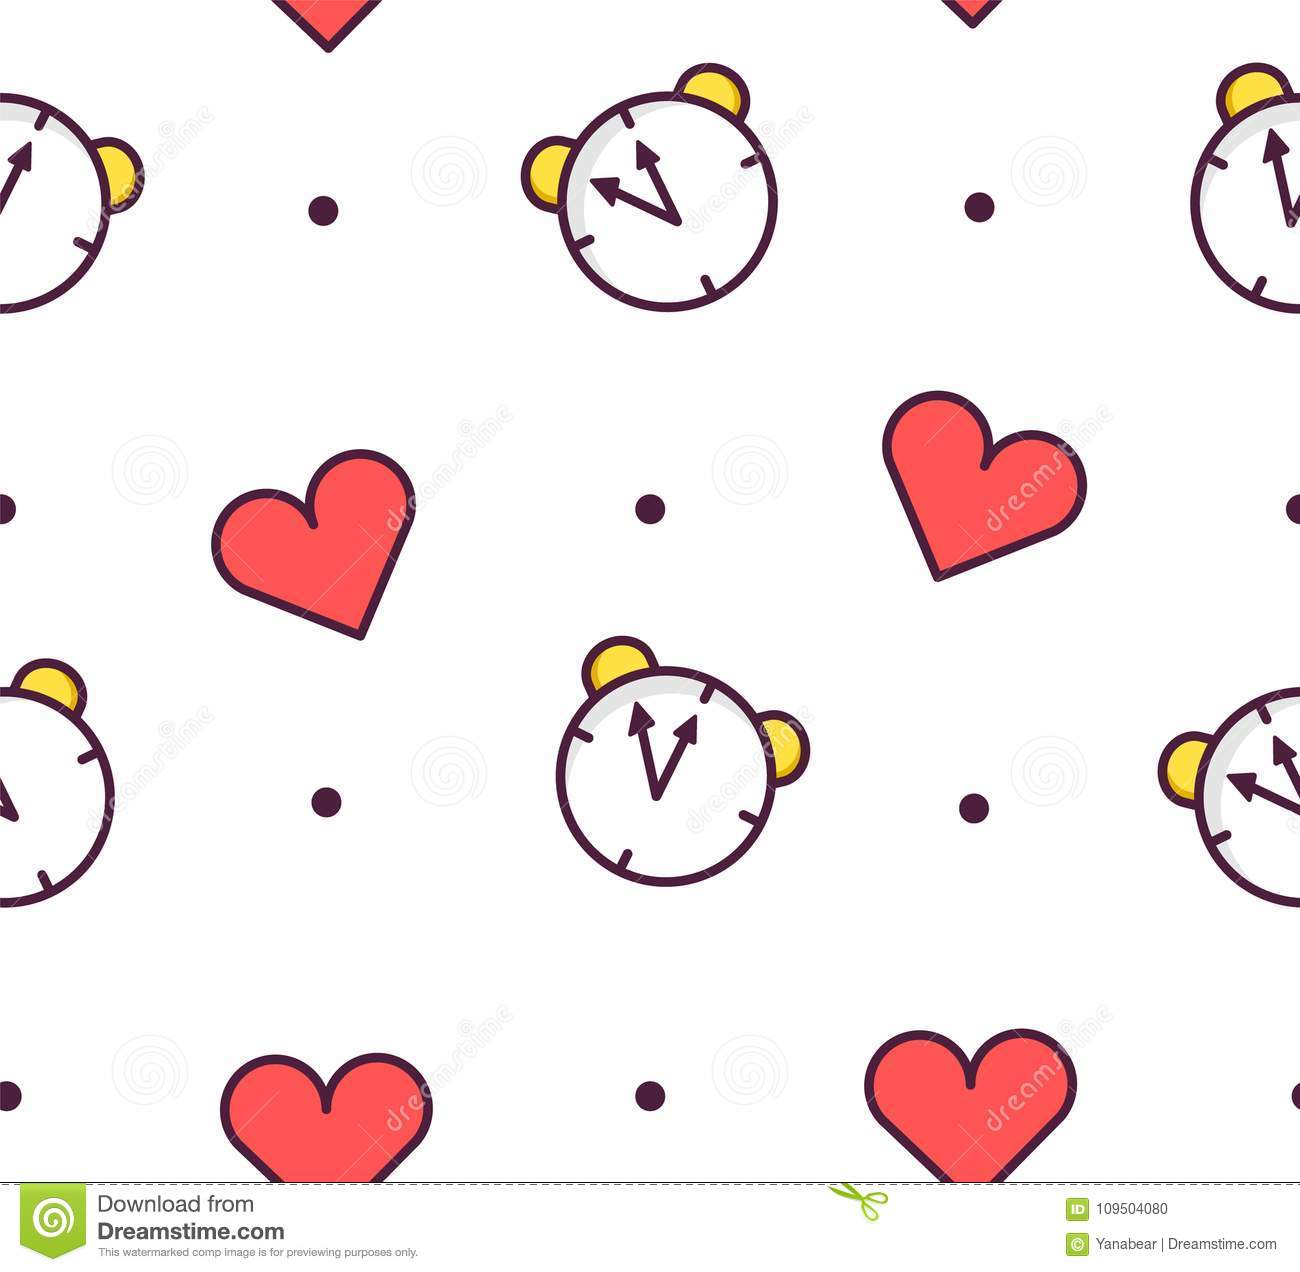 Seamless pattern in polka dot with alarm clock and hearts on white background. Thin line flat design. Vector